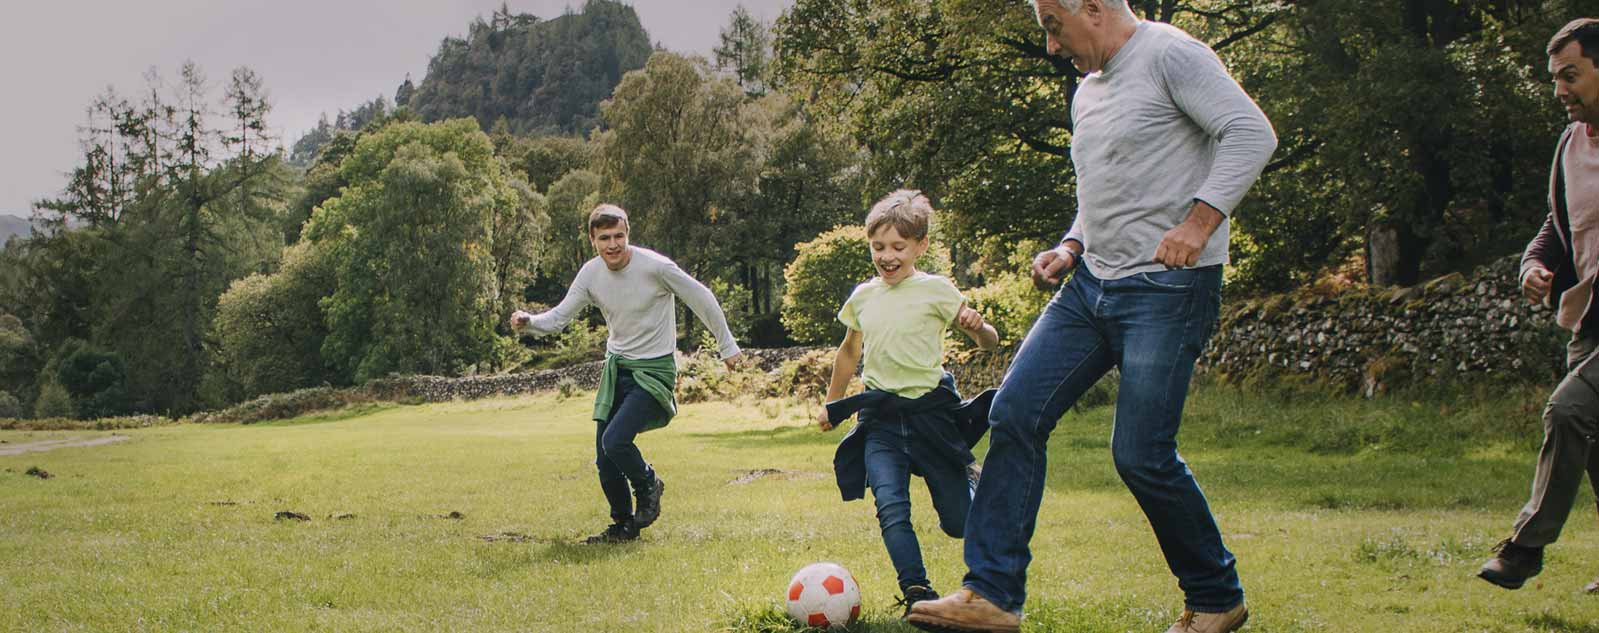 Family in a field playing soccer after working with Geisinger orthopaedic care